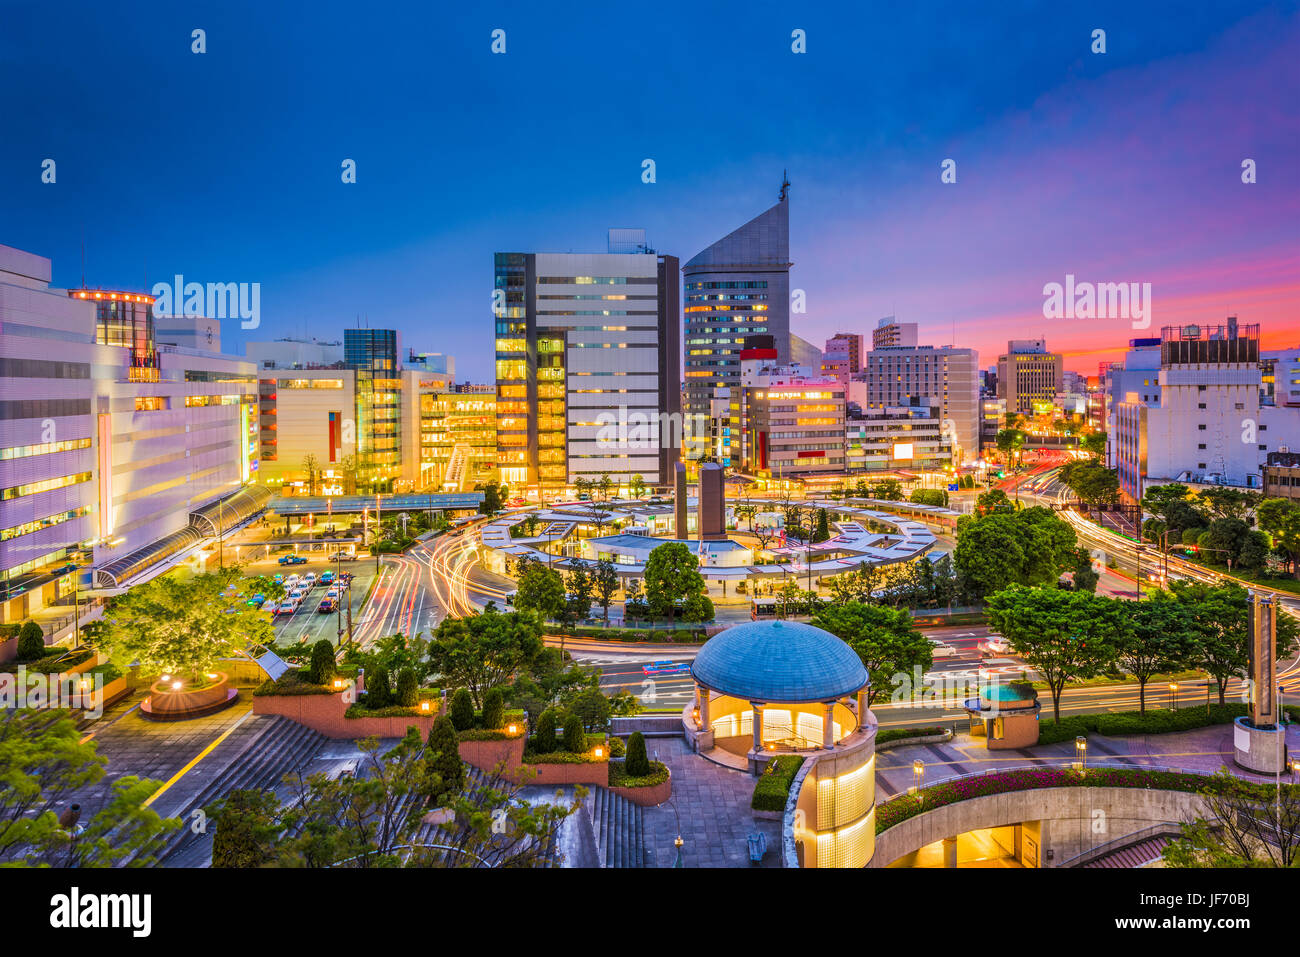 Hamamatsu City, Japan Skyline in der Dämmerung. Stockbild